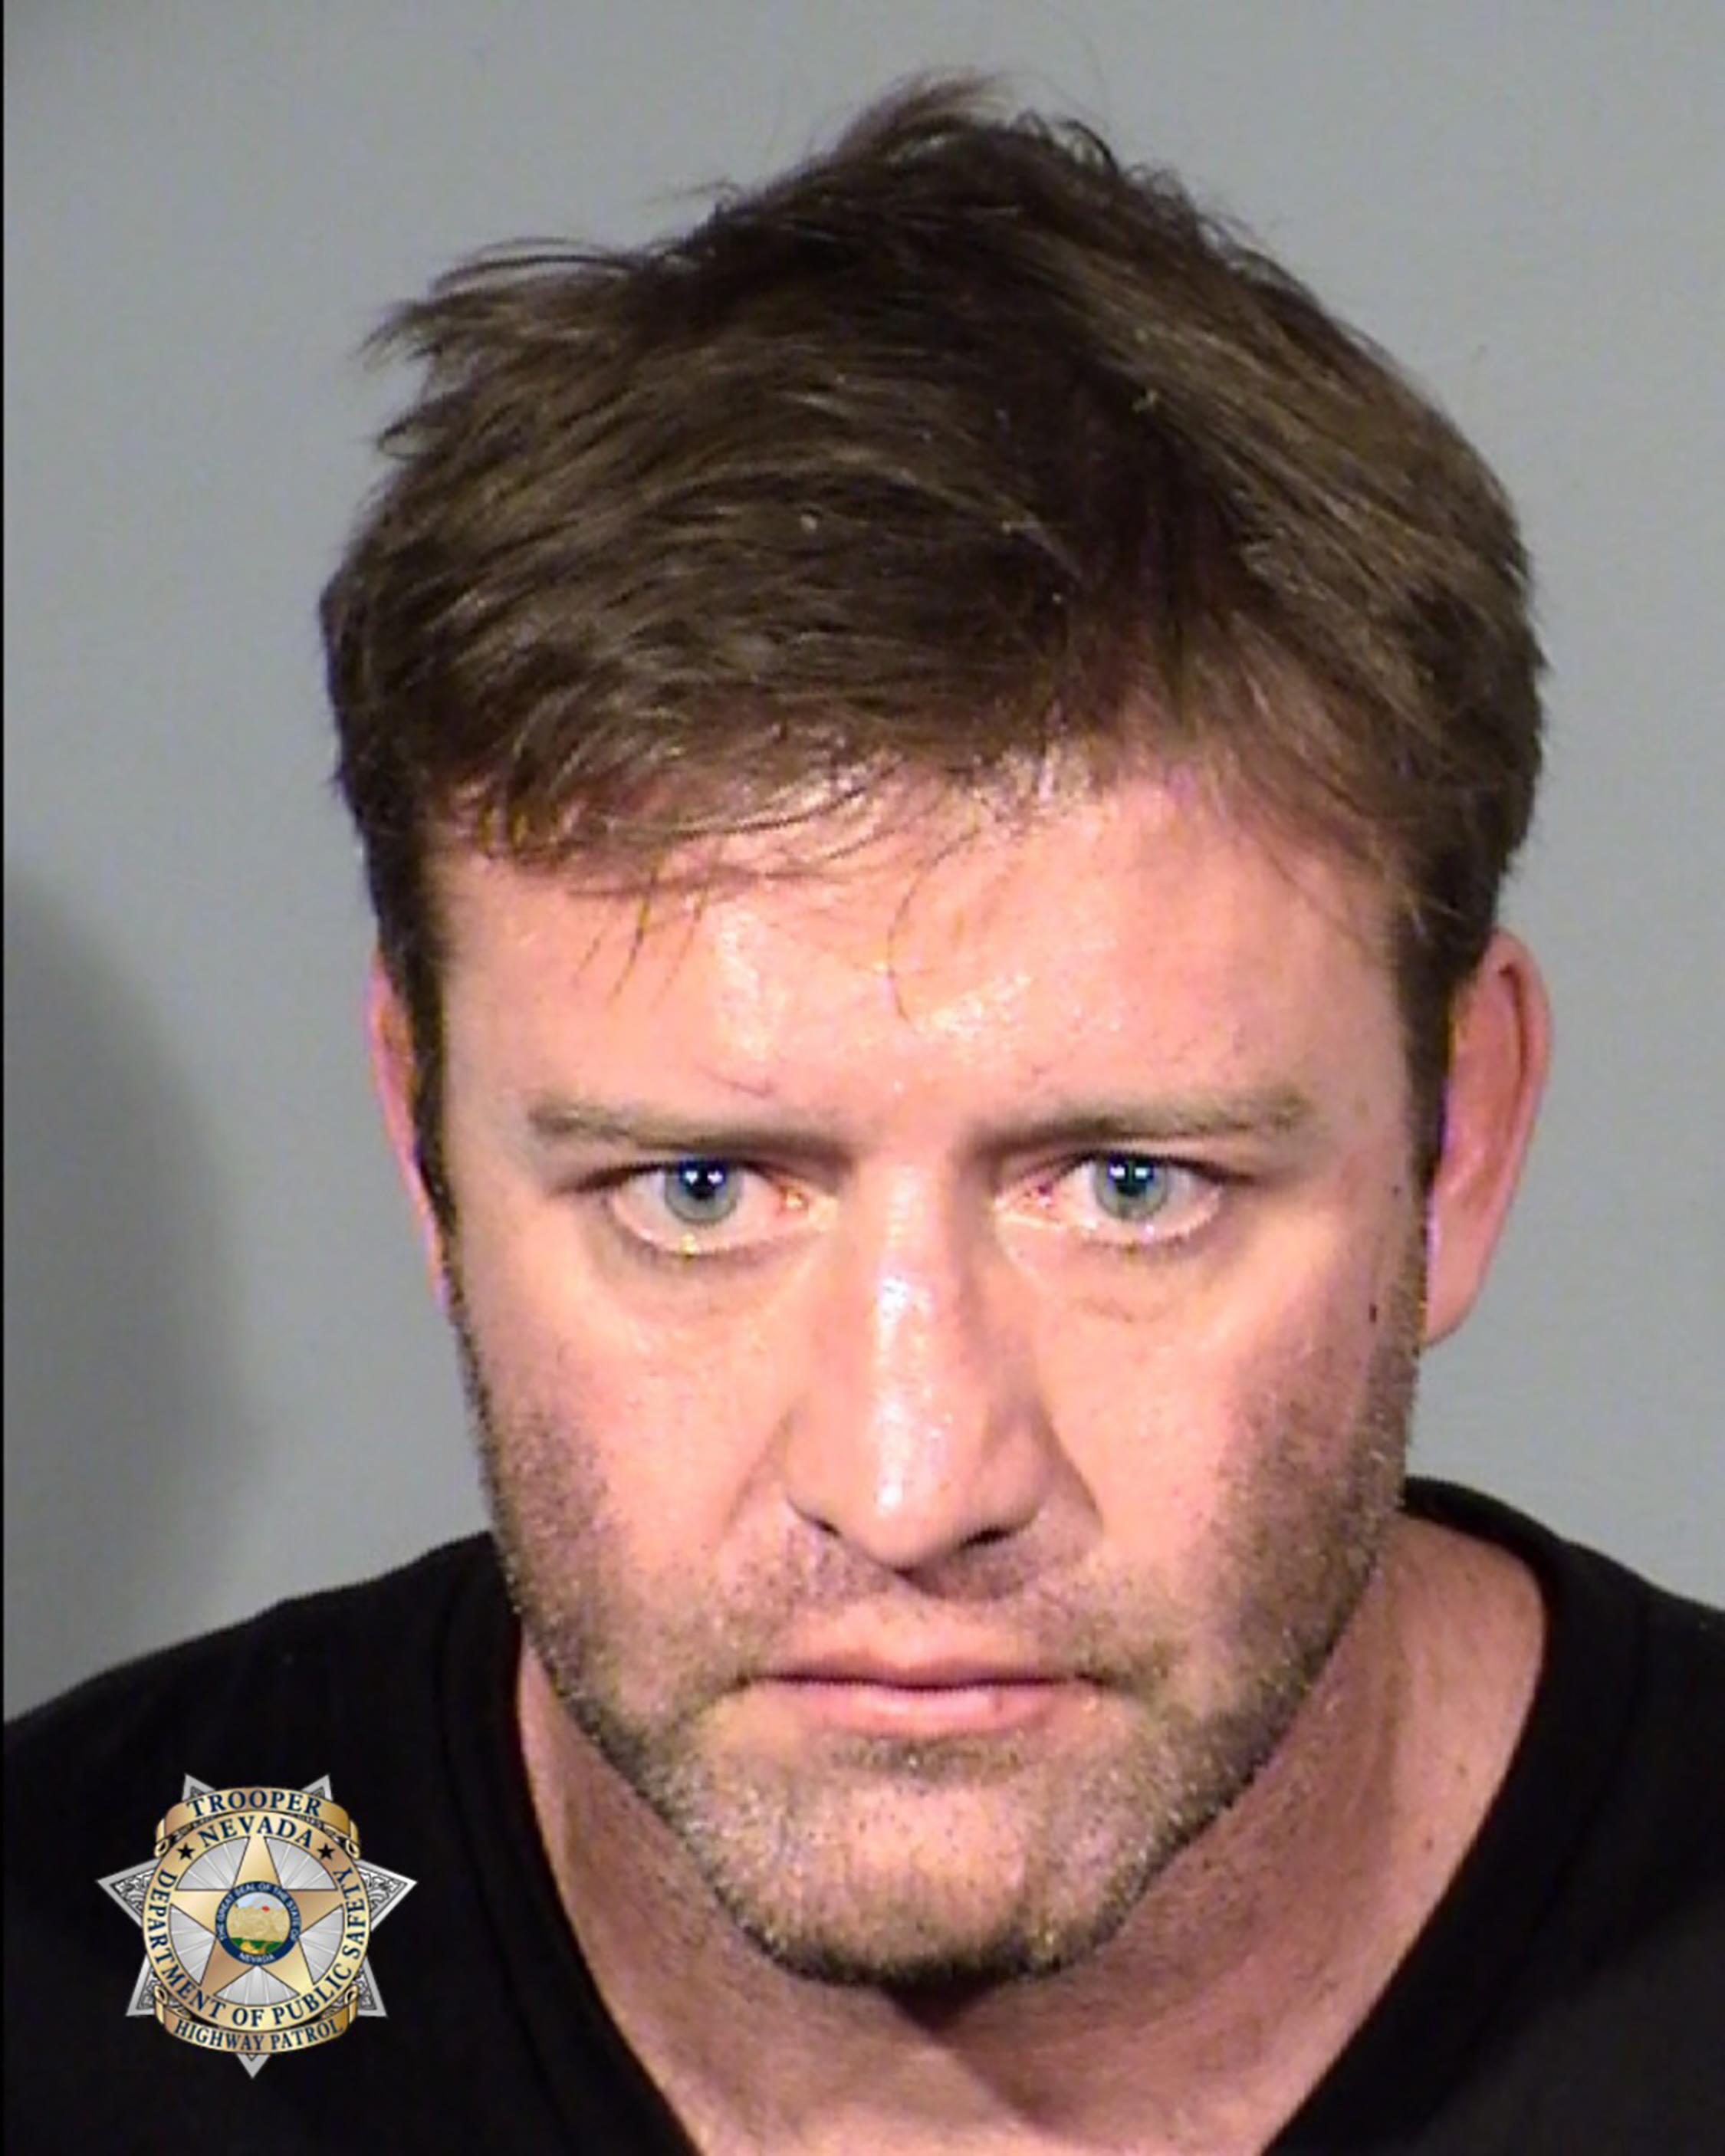 Stephan Bonnar has been arrested on suspicion of driving under the influence